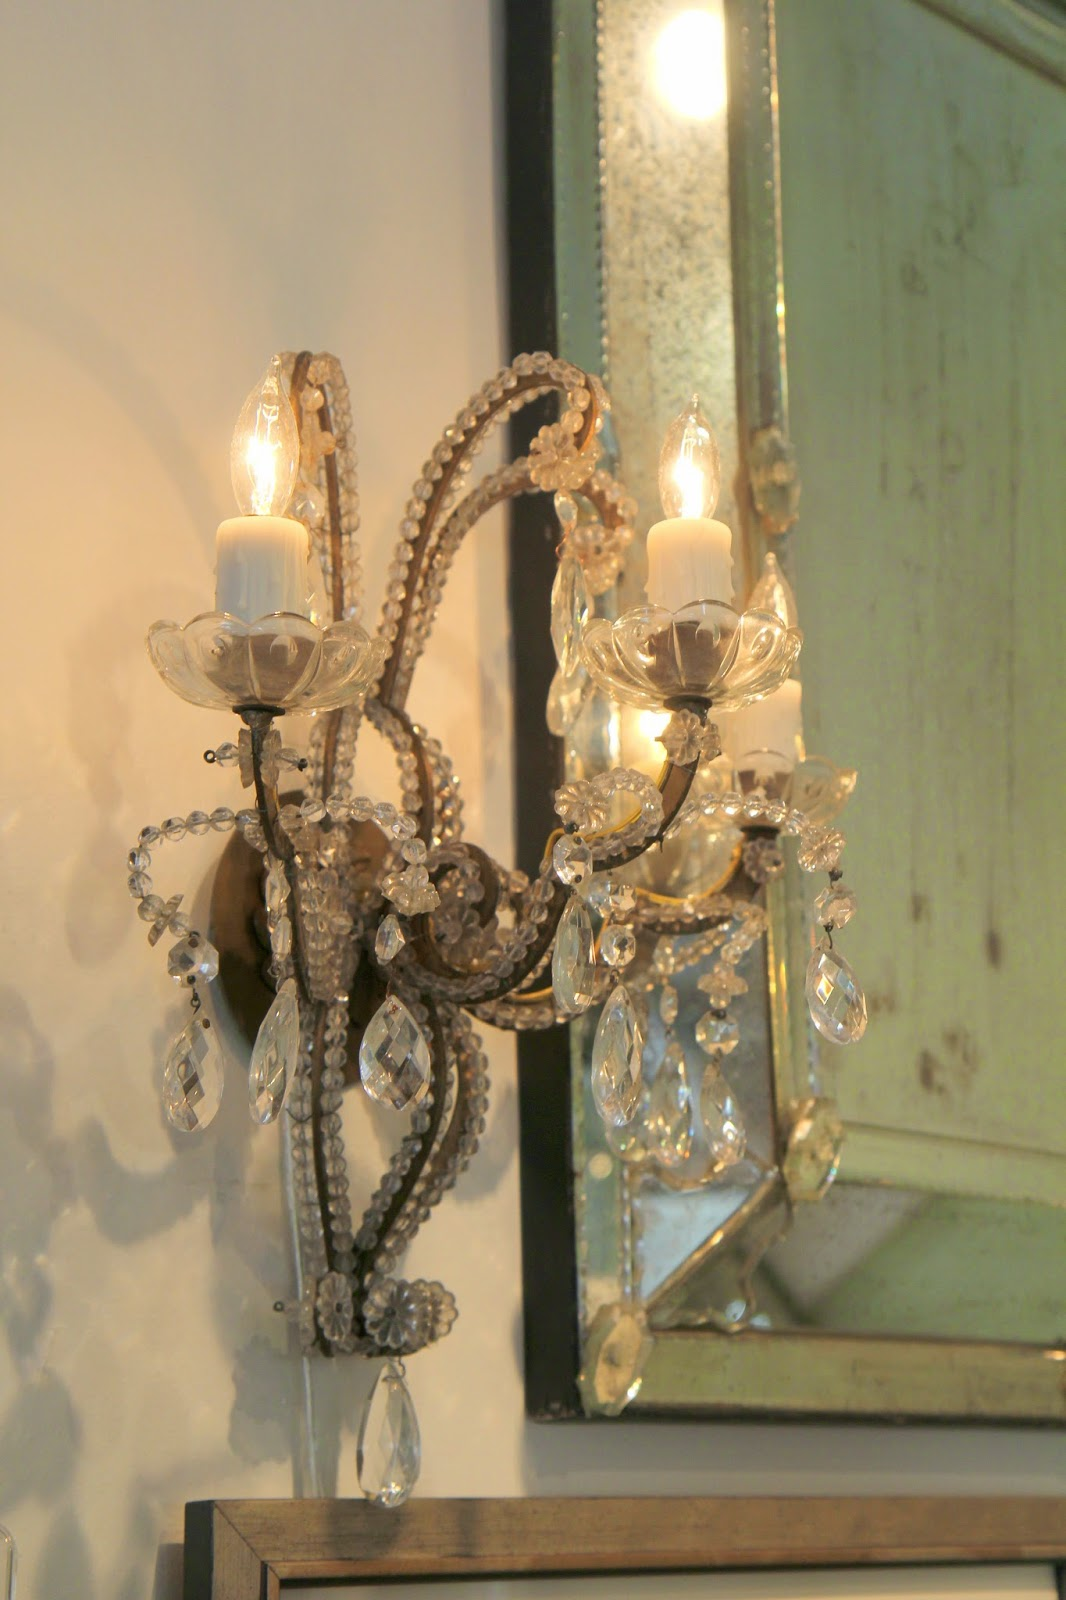 Antique beaded sconce; Inspirational Chandeliers and Sconces; Nora's Nest